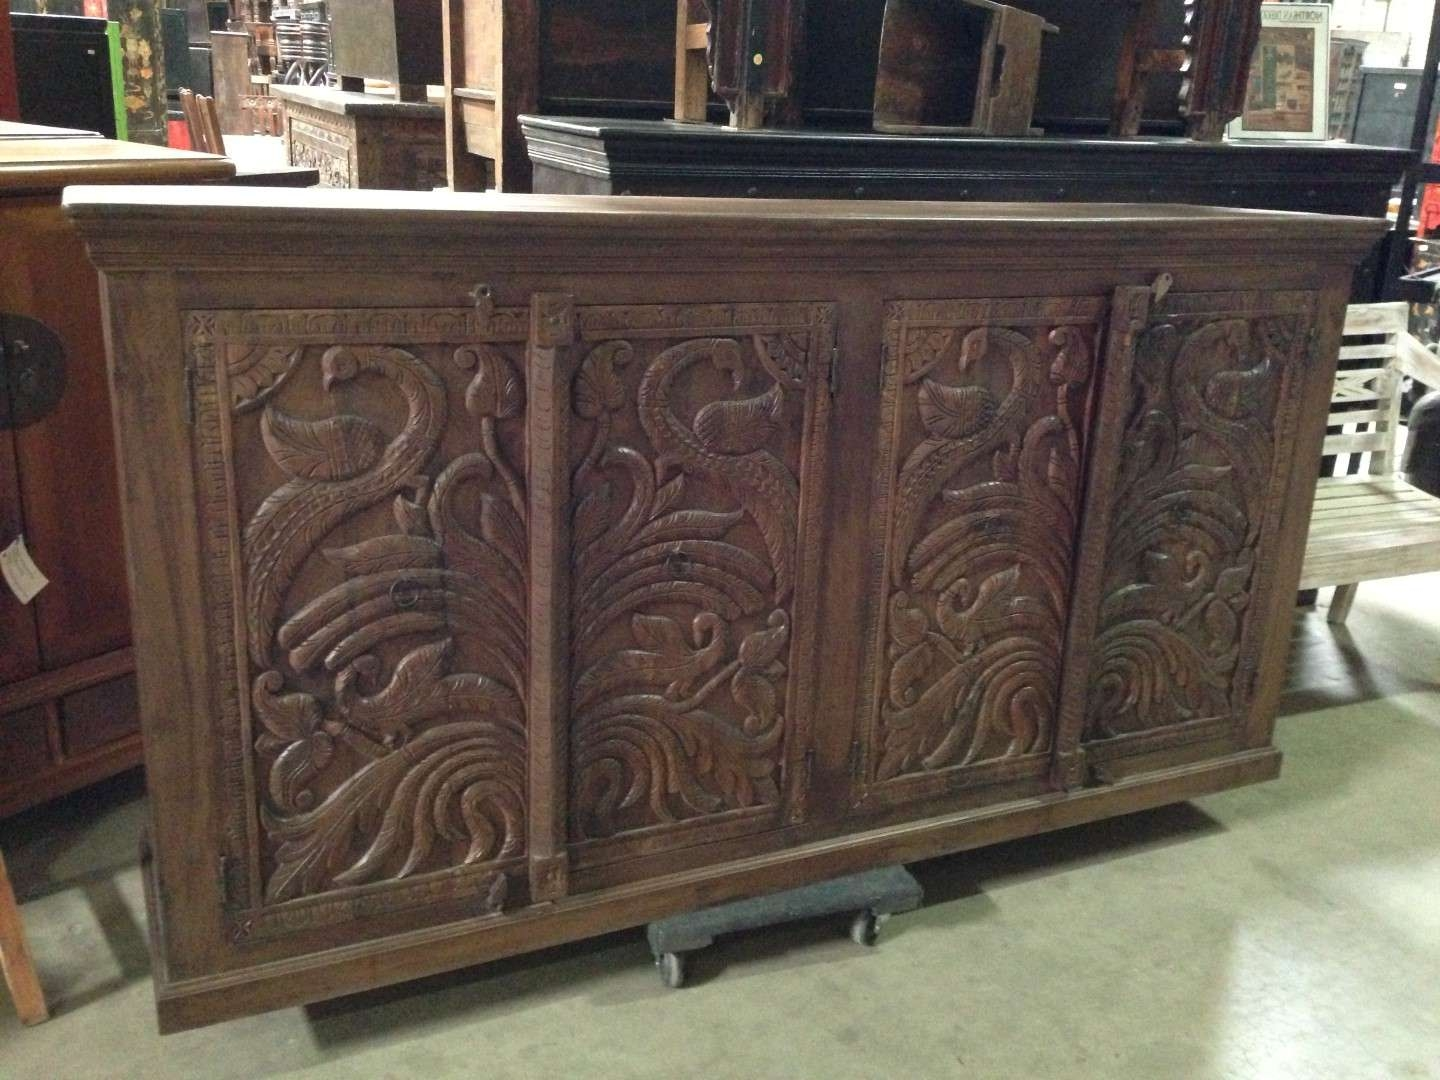 Imported Rustic Sideboards From India, China, Indonesia And Mexico Inside Indian Sideboards Furniture (View 10 of 20)